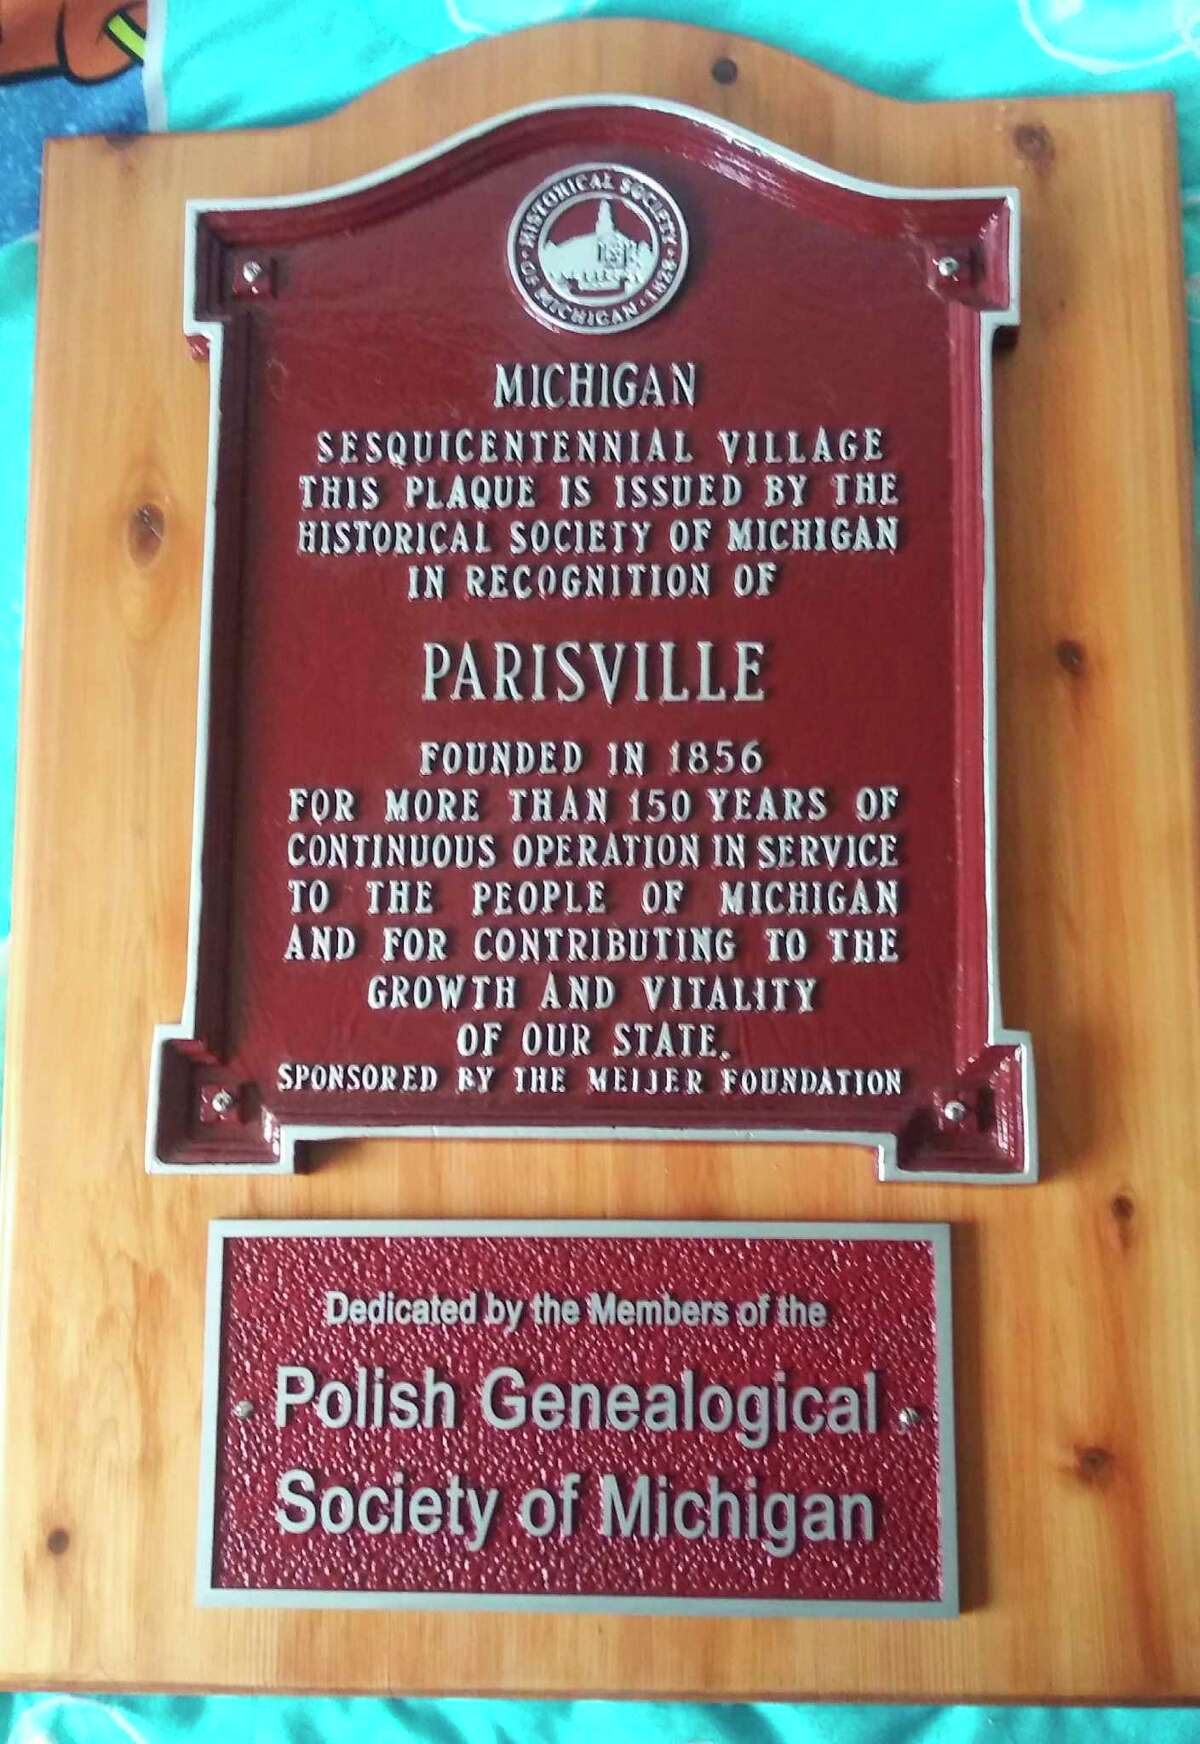 The plaque that will be placed in Parisville on June 5. (Roger Laske/Courtesy Photo)